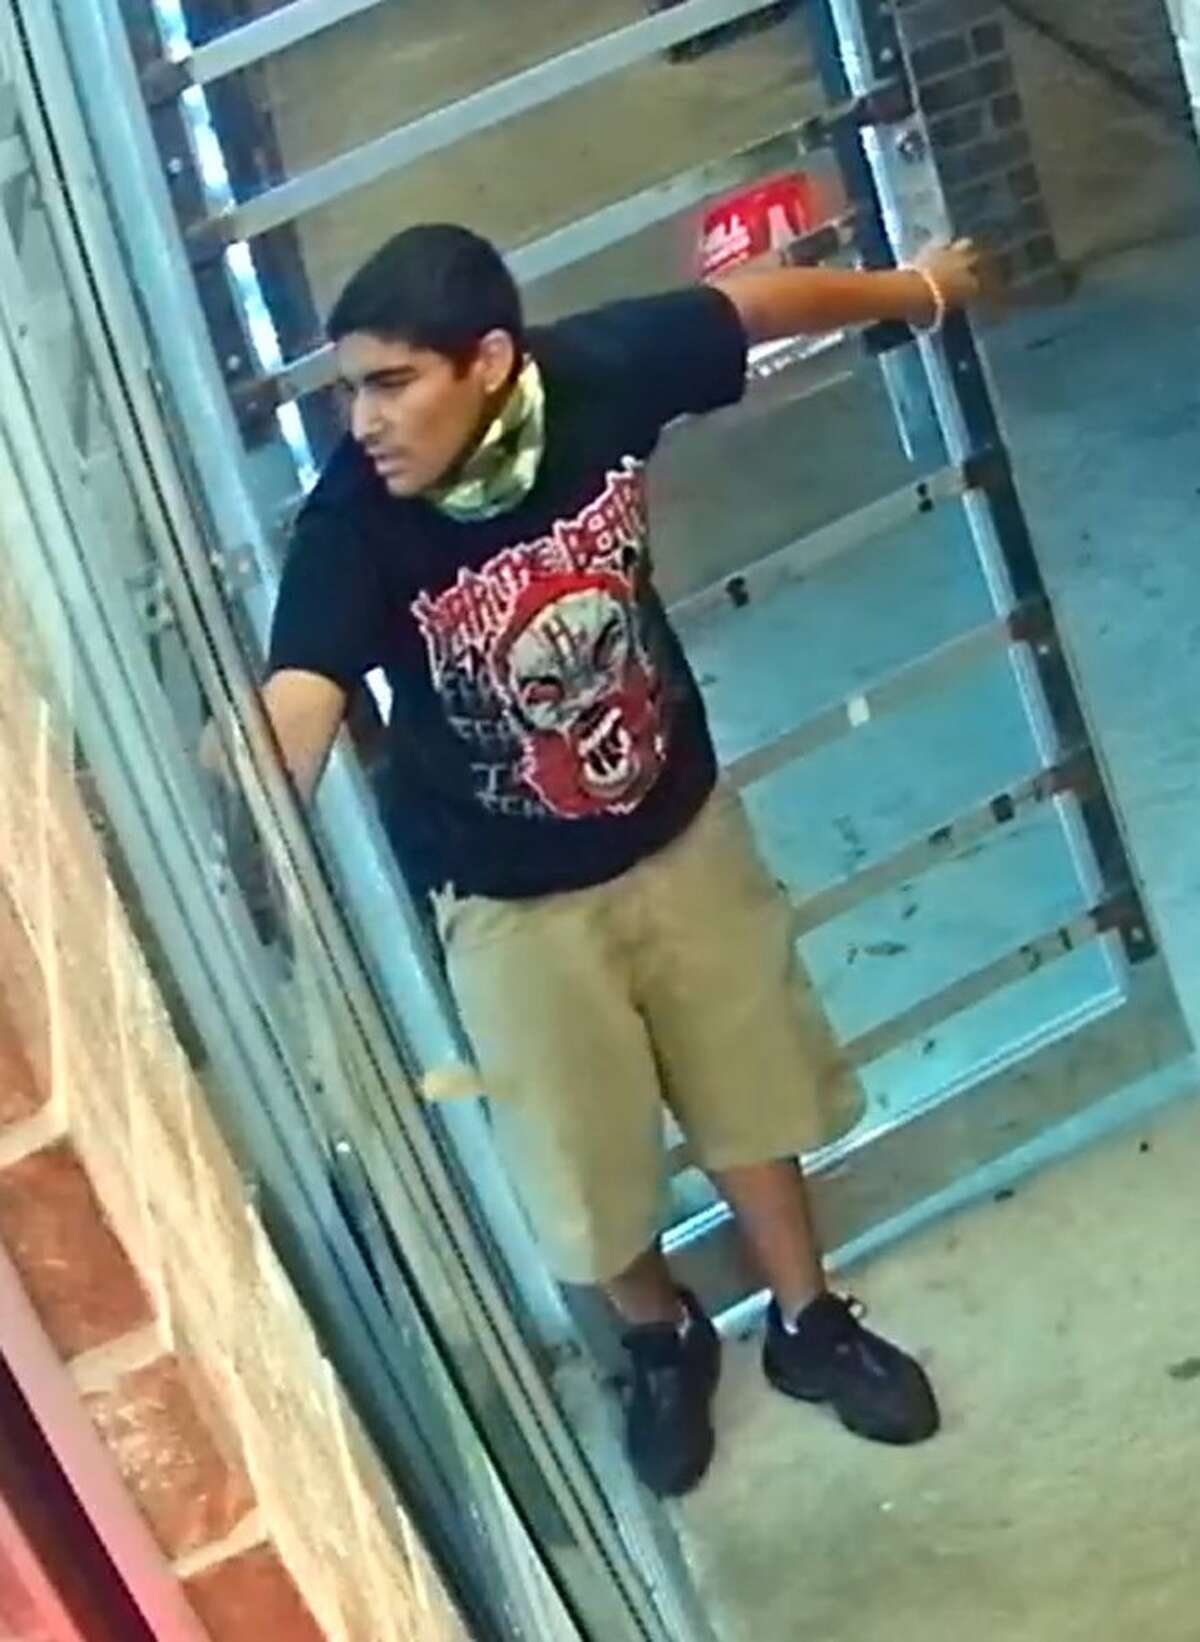 The subject pictured is wanted in Houston convenience store robbery that turned deadly at about 10 p.m. March, 9, 2017 at a gas station located at 631 Uvalde Road. Police say the subject and another person attempted to rob the station, but a employee inside with a gun shot and killed the second robber. The employee was also struck in the gunfire.